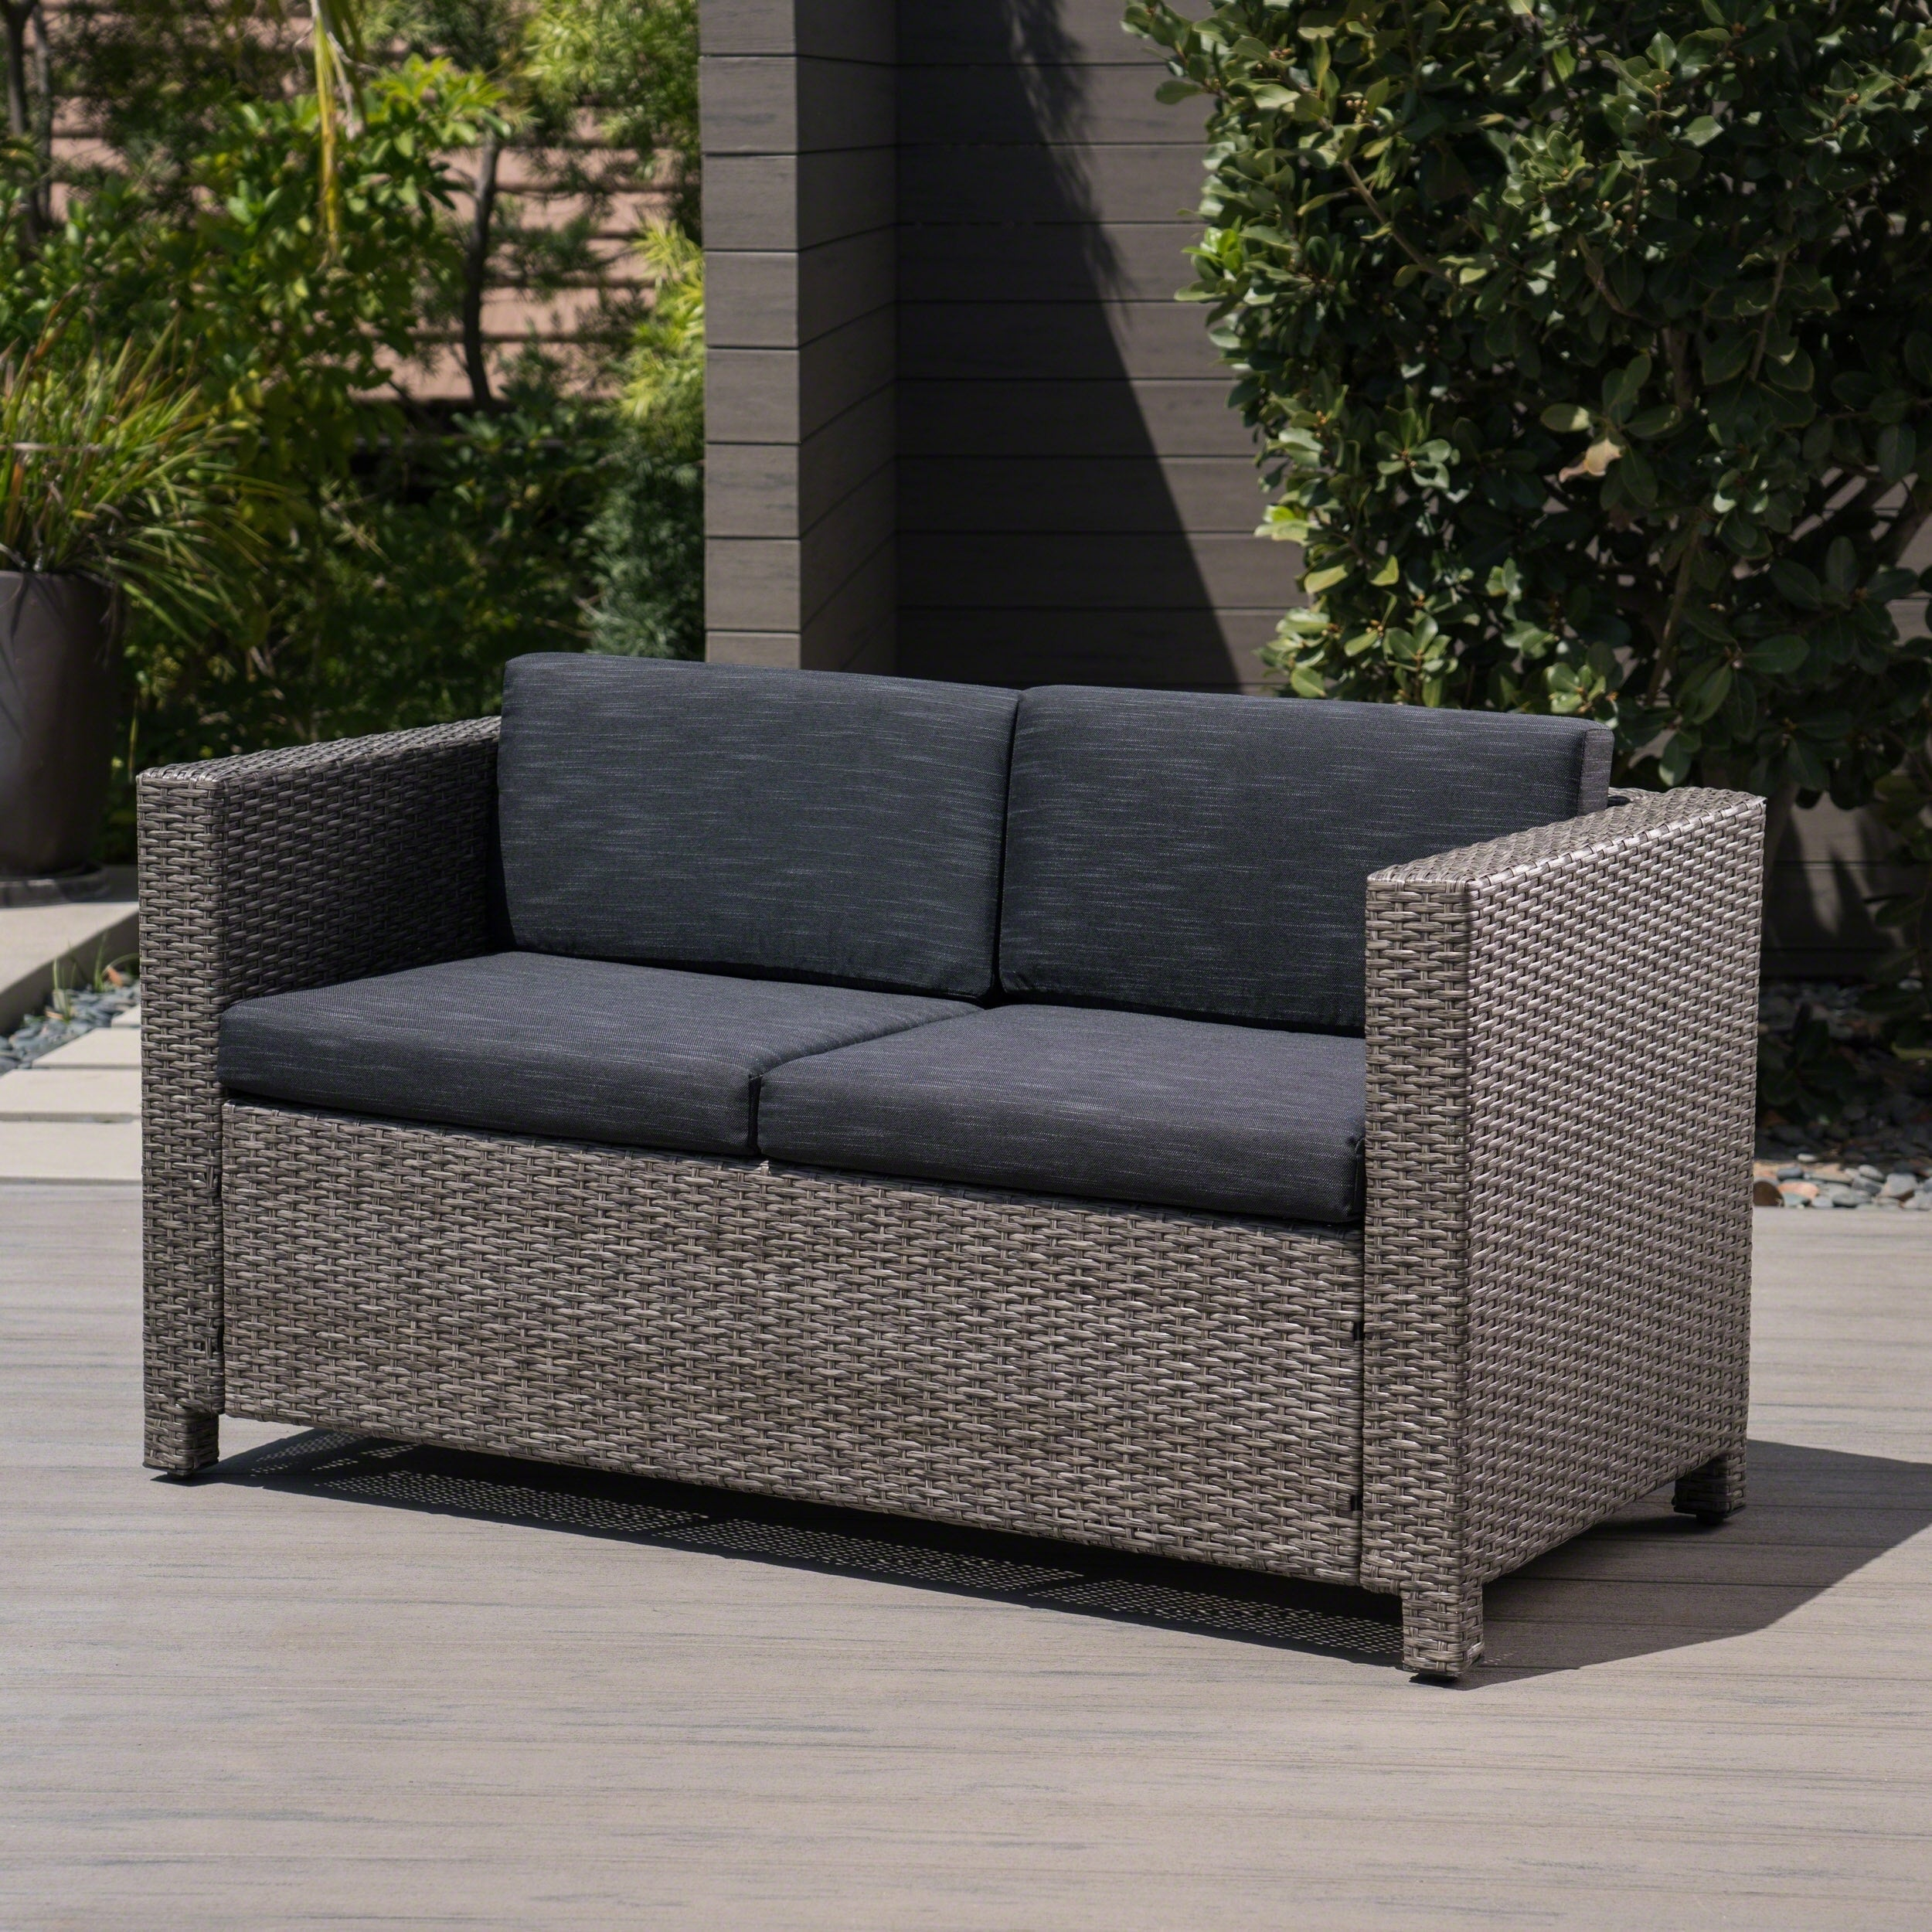 Tremendous Details About Puerta Outdoor Wicker Loveseat With Cushion By Christopher Knight Home Cjindustries Chair Design For Home Cjindustriesco